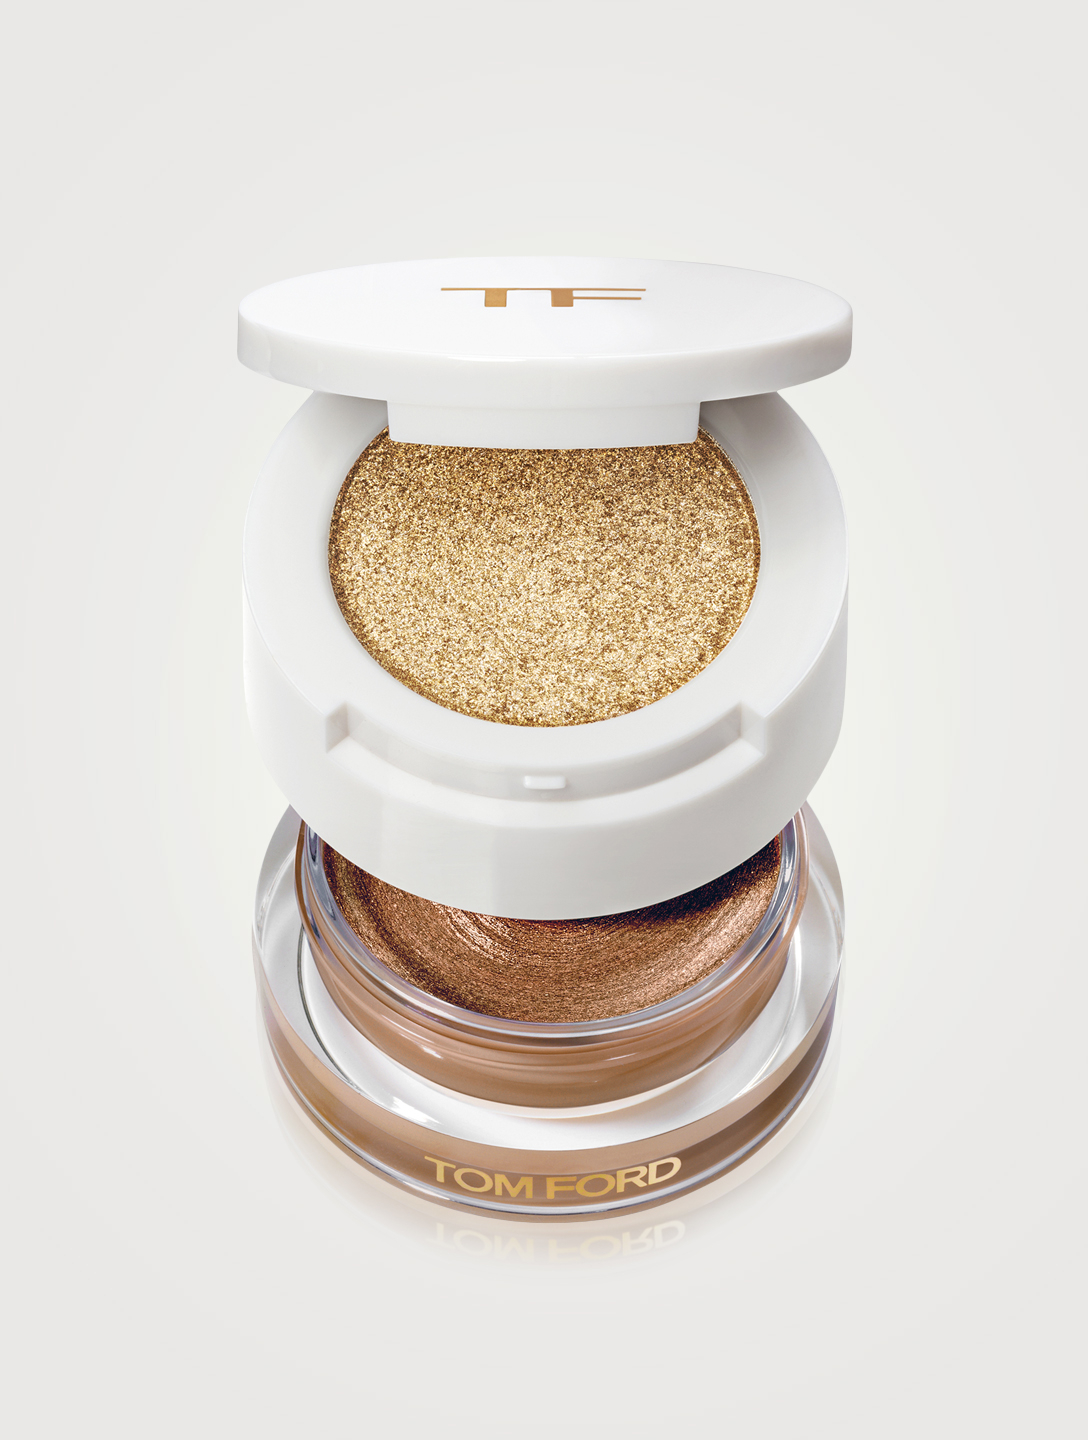 TOM FORD Cream and Powder Eye Color Beauty Bronze